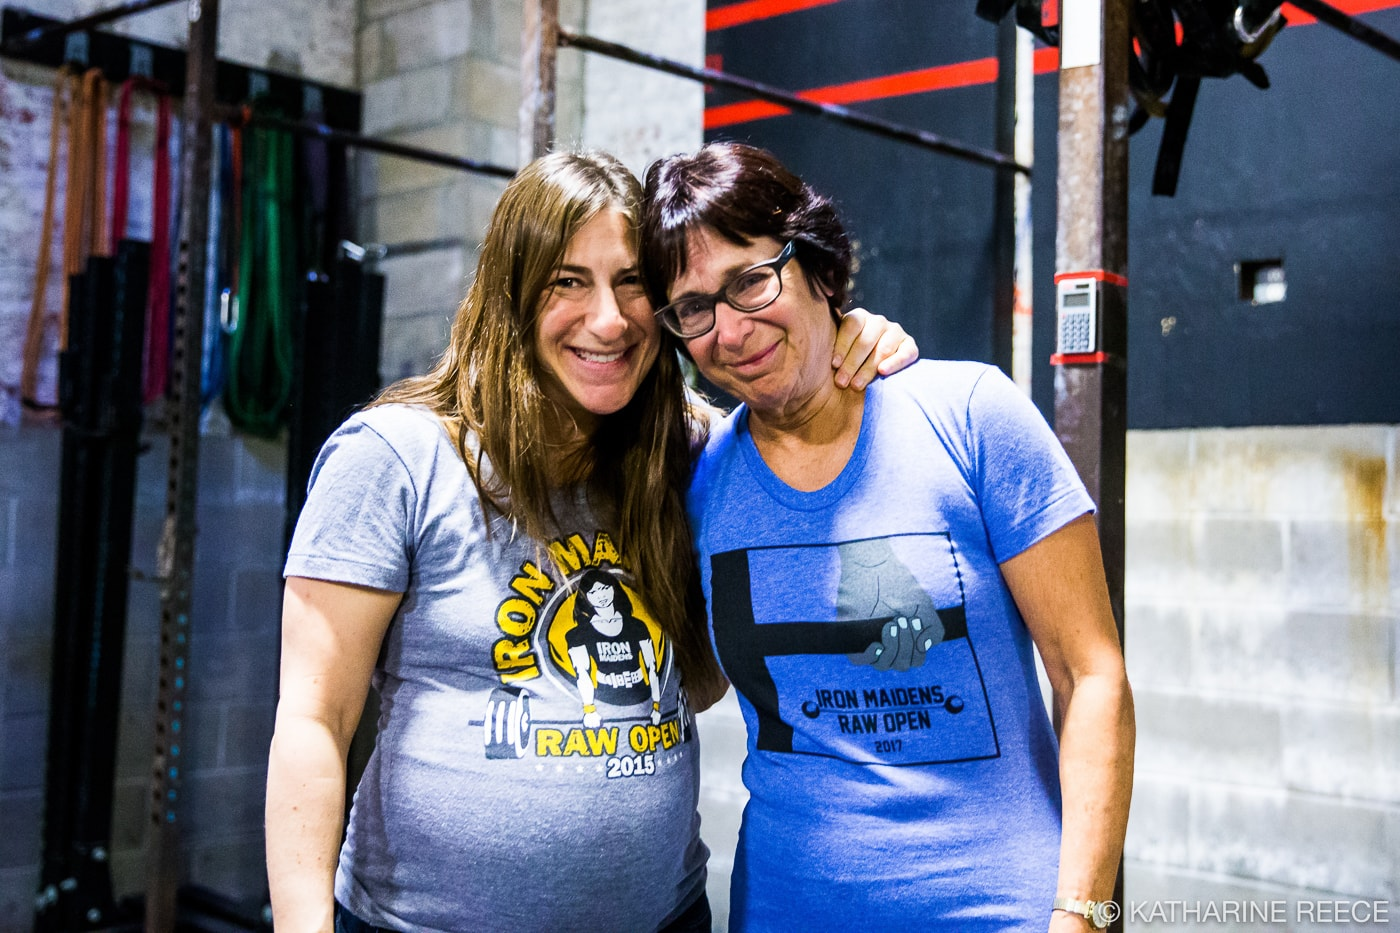 Margie and her mother, Linda Lempert, at Iron Maidens in 2017. Linda started lifting at the age of 70 to prepare for Iron Maidens 2016.